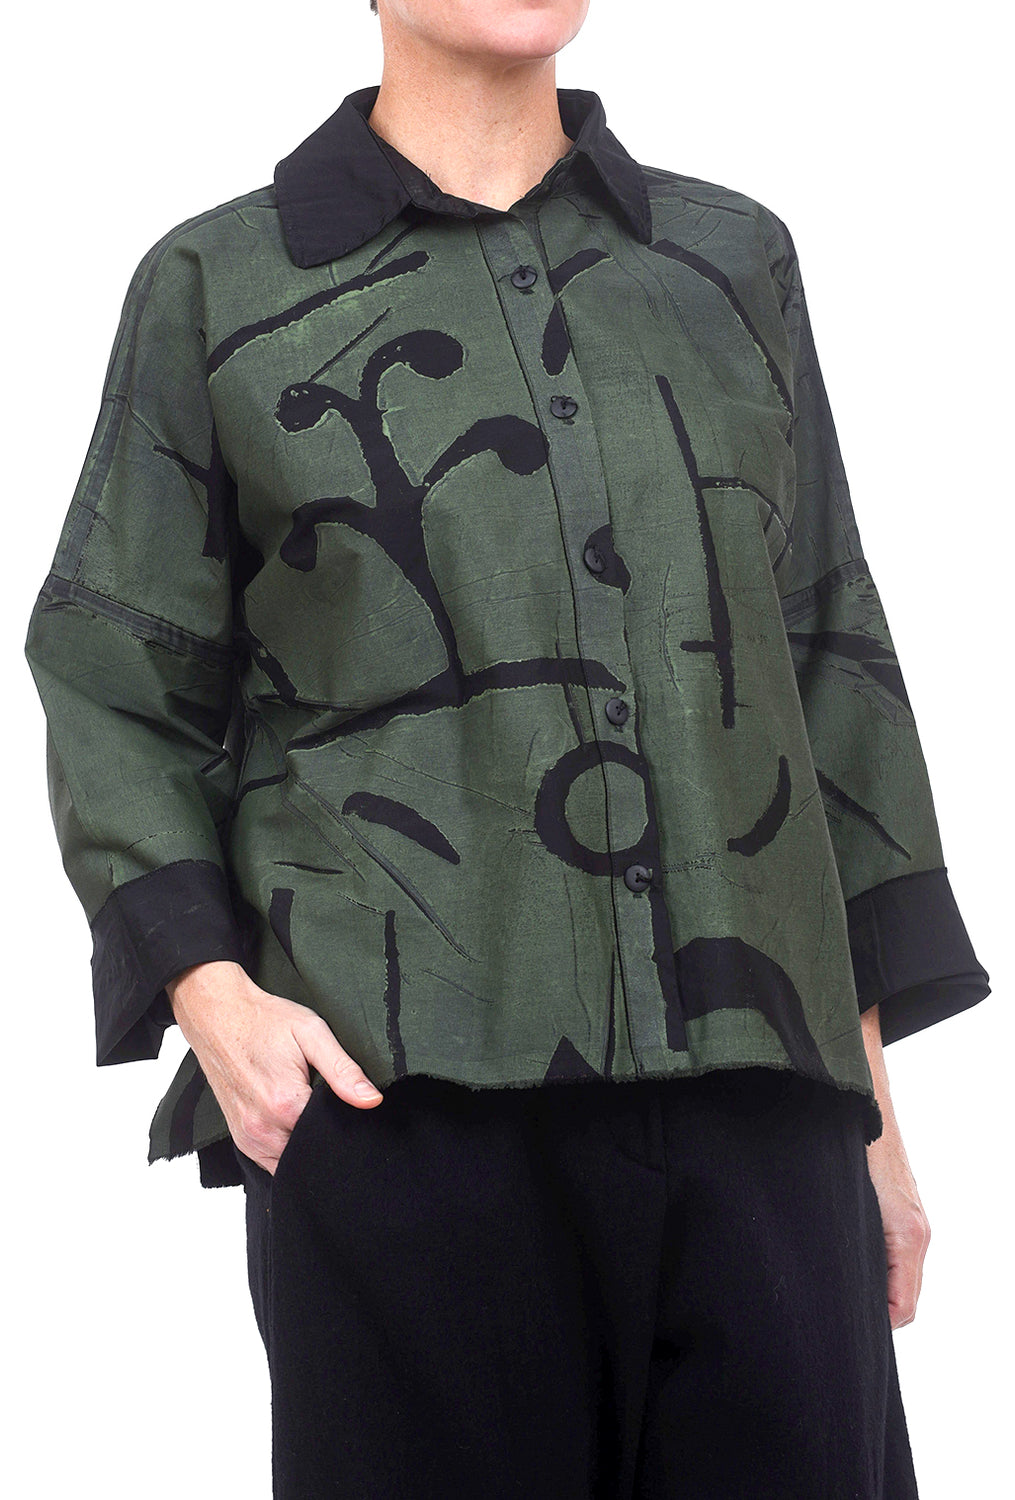 Skif International Square Shirt, Olive/Black One Size Olive